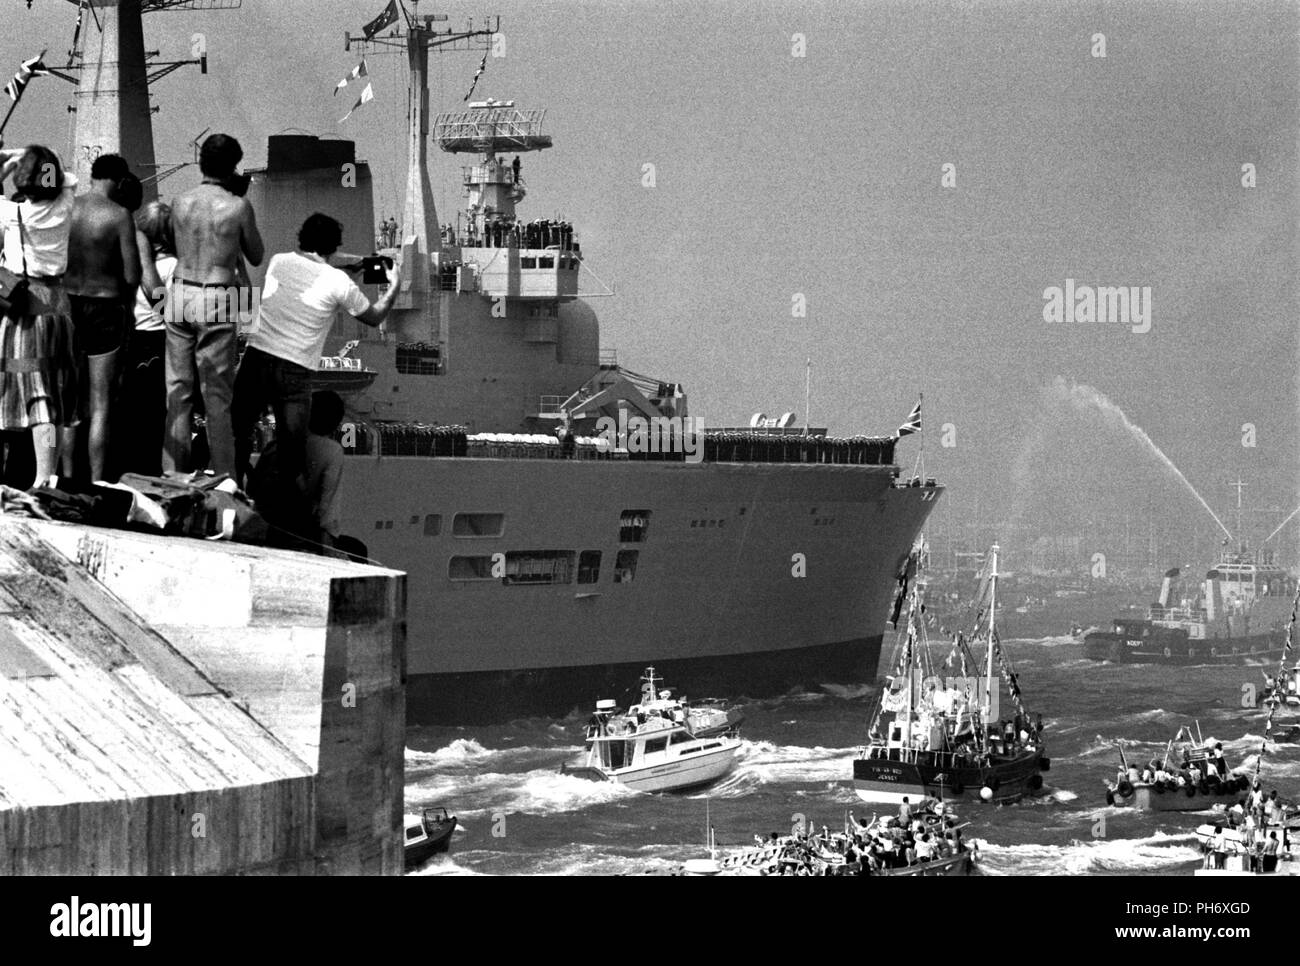 AJAXNETPHOTO. 17TH SEP, 1982. PORTSMOUTH,ENGLAND - INVINCIBLE RETURNS - THE CARRIER HMS INVINCIBLE RETURNING TO PORTSMOUTH ACCOMPANIED BY A FLOTILLA OF WELL WISHERS AT THE END OF HER SOUTH ATLANTIC DUTY DURING THE FALKLANDS CAMPAIGN.   PHOTO:JONATHAN EASTLAND/AJAXREF:820917_14 - Stock Image